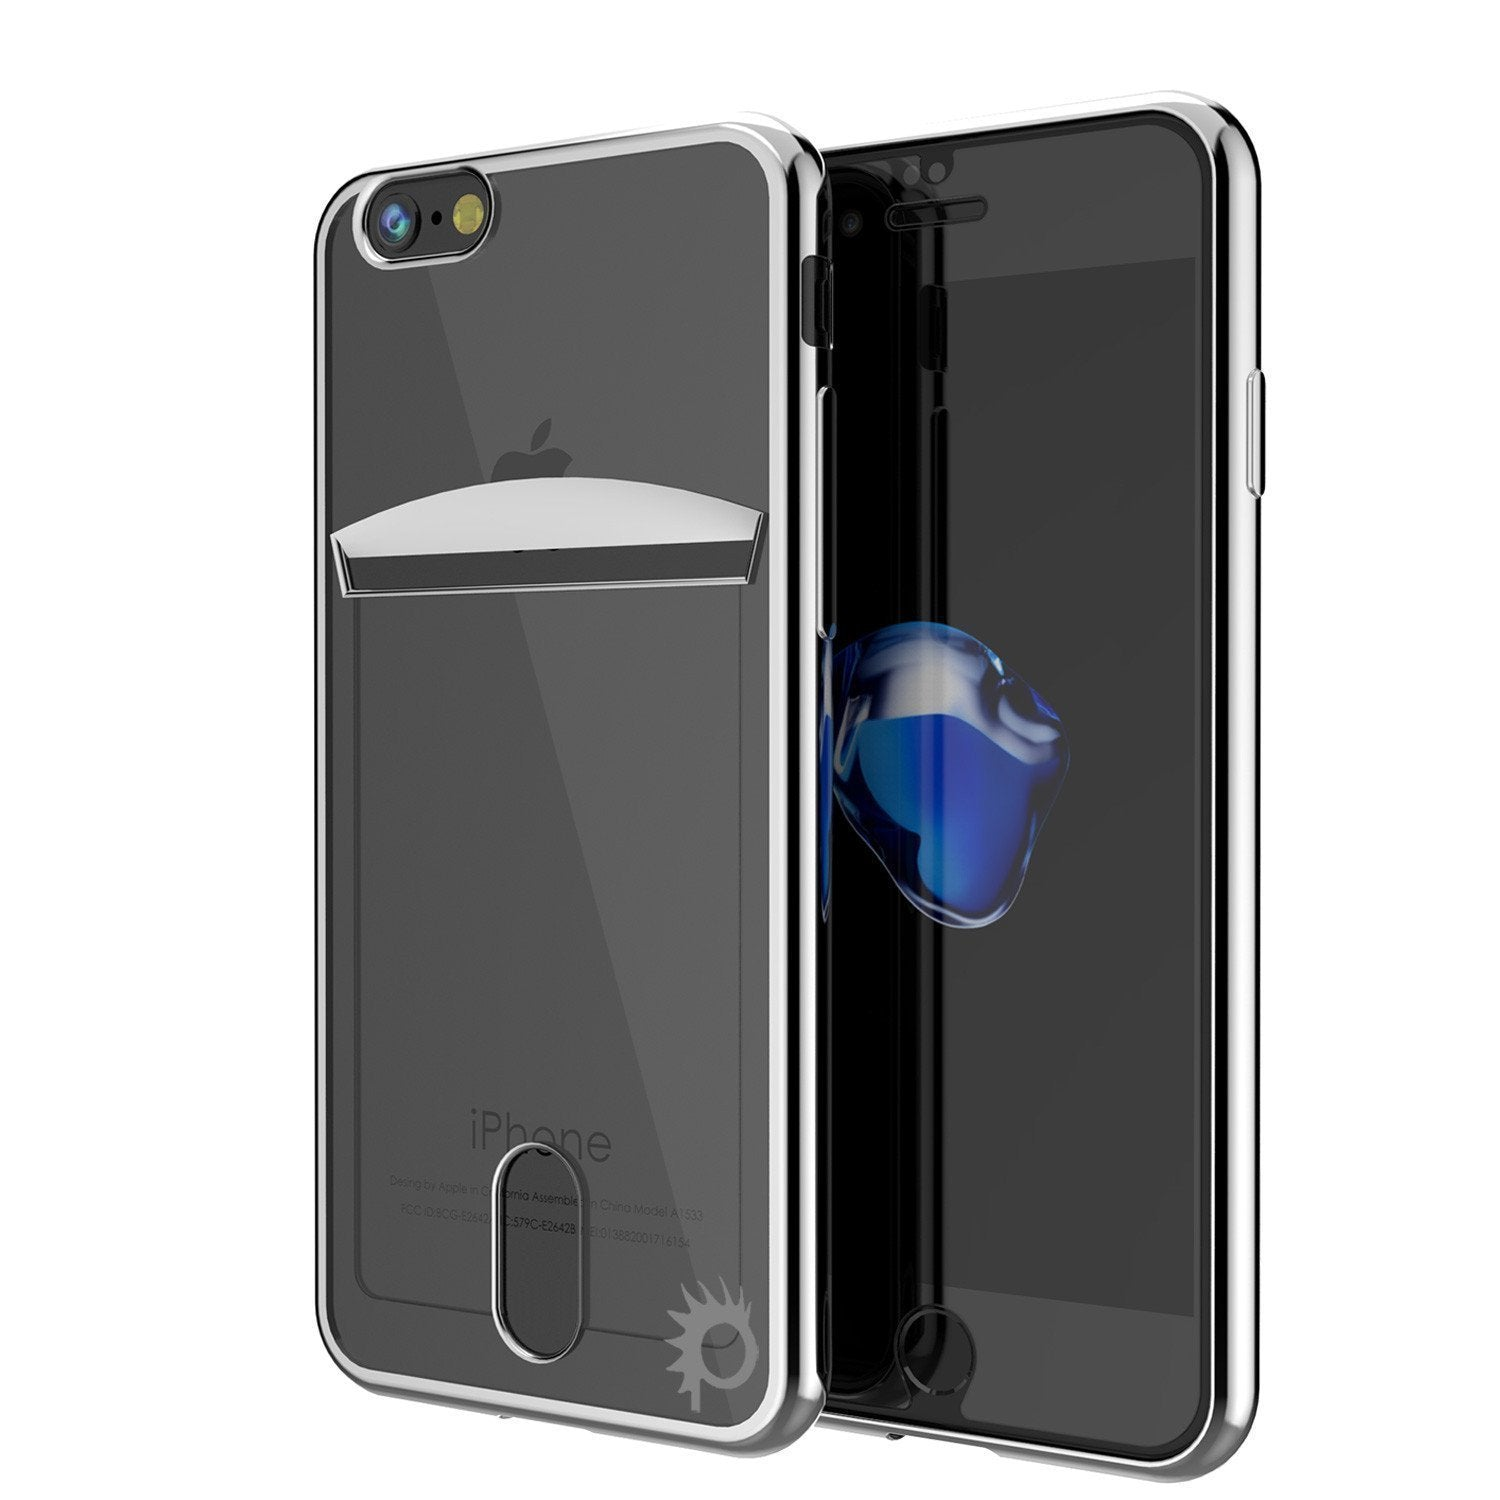 iPhone 8 Case, PUNKCASE® LUCID Silver Series | Card Slot | SHIELD Screen Protector | Ultra fit